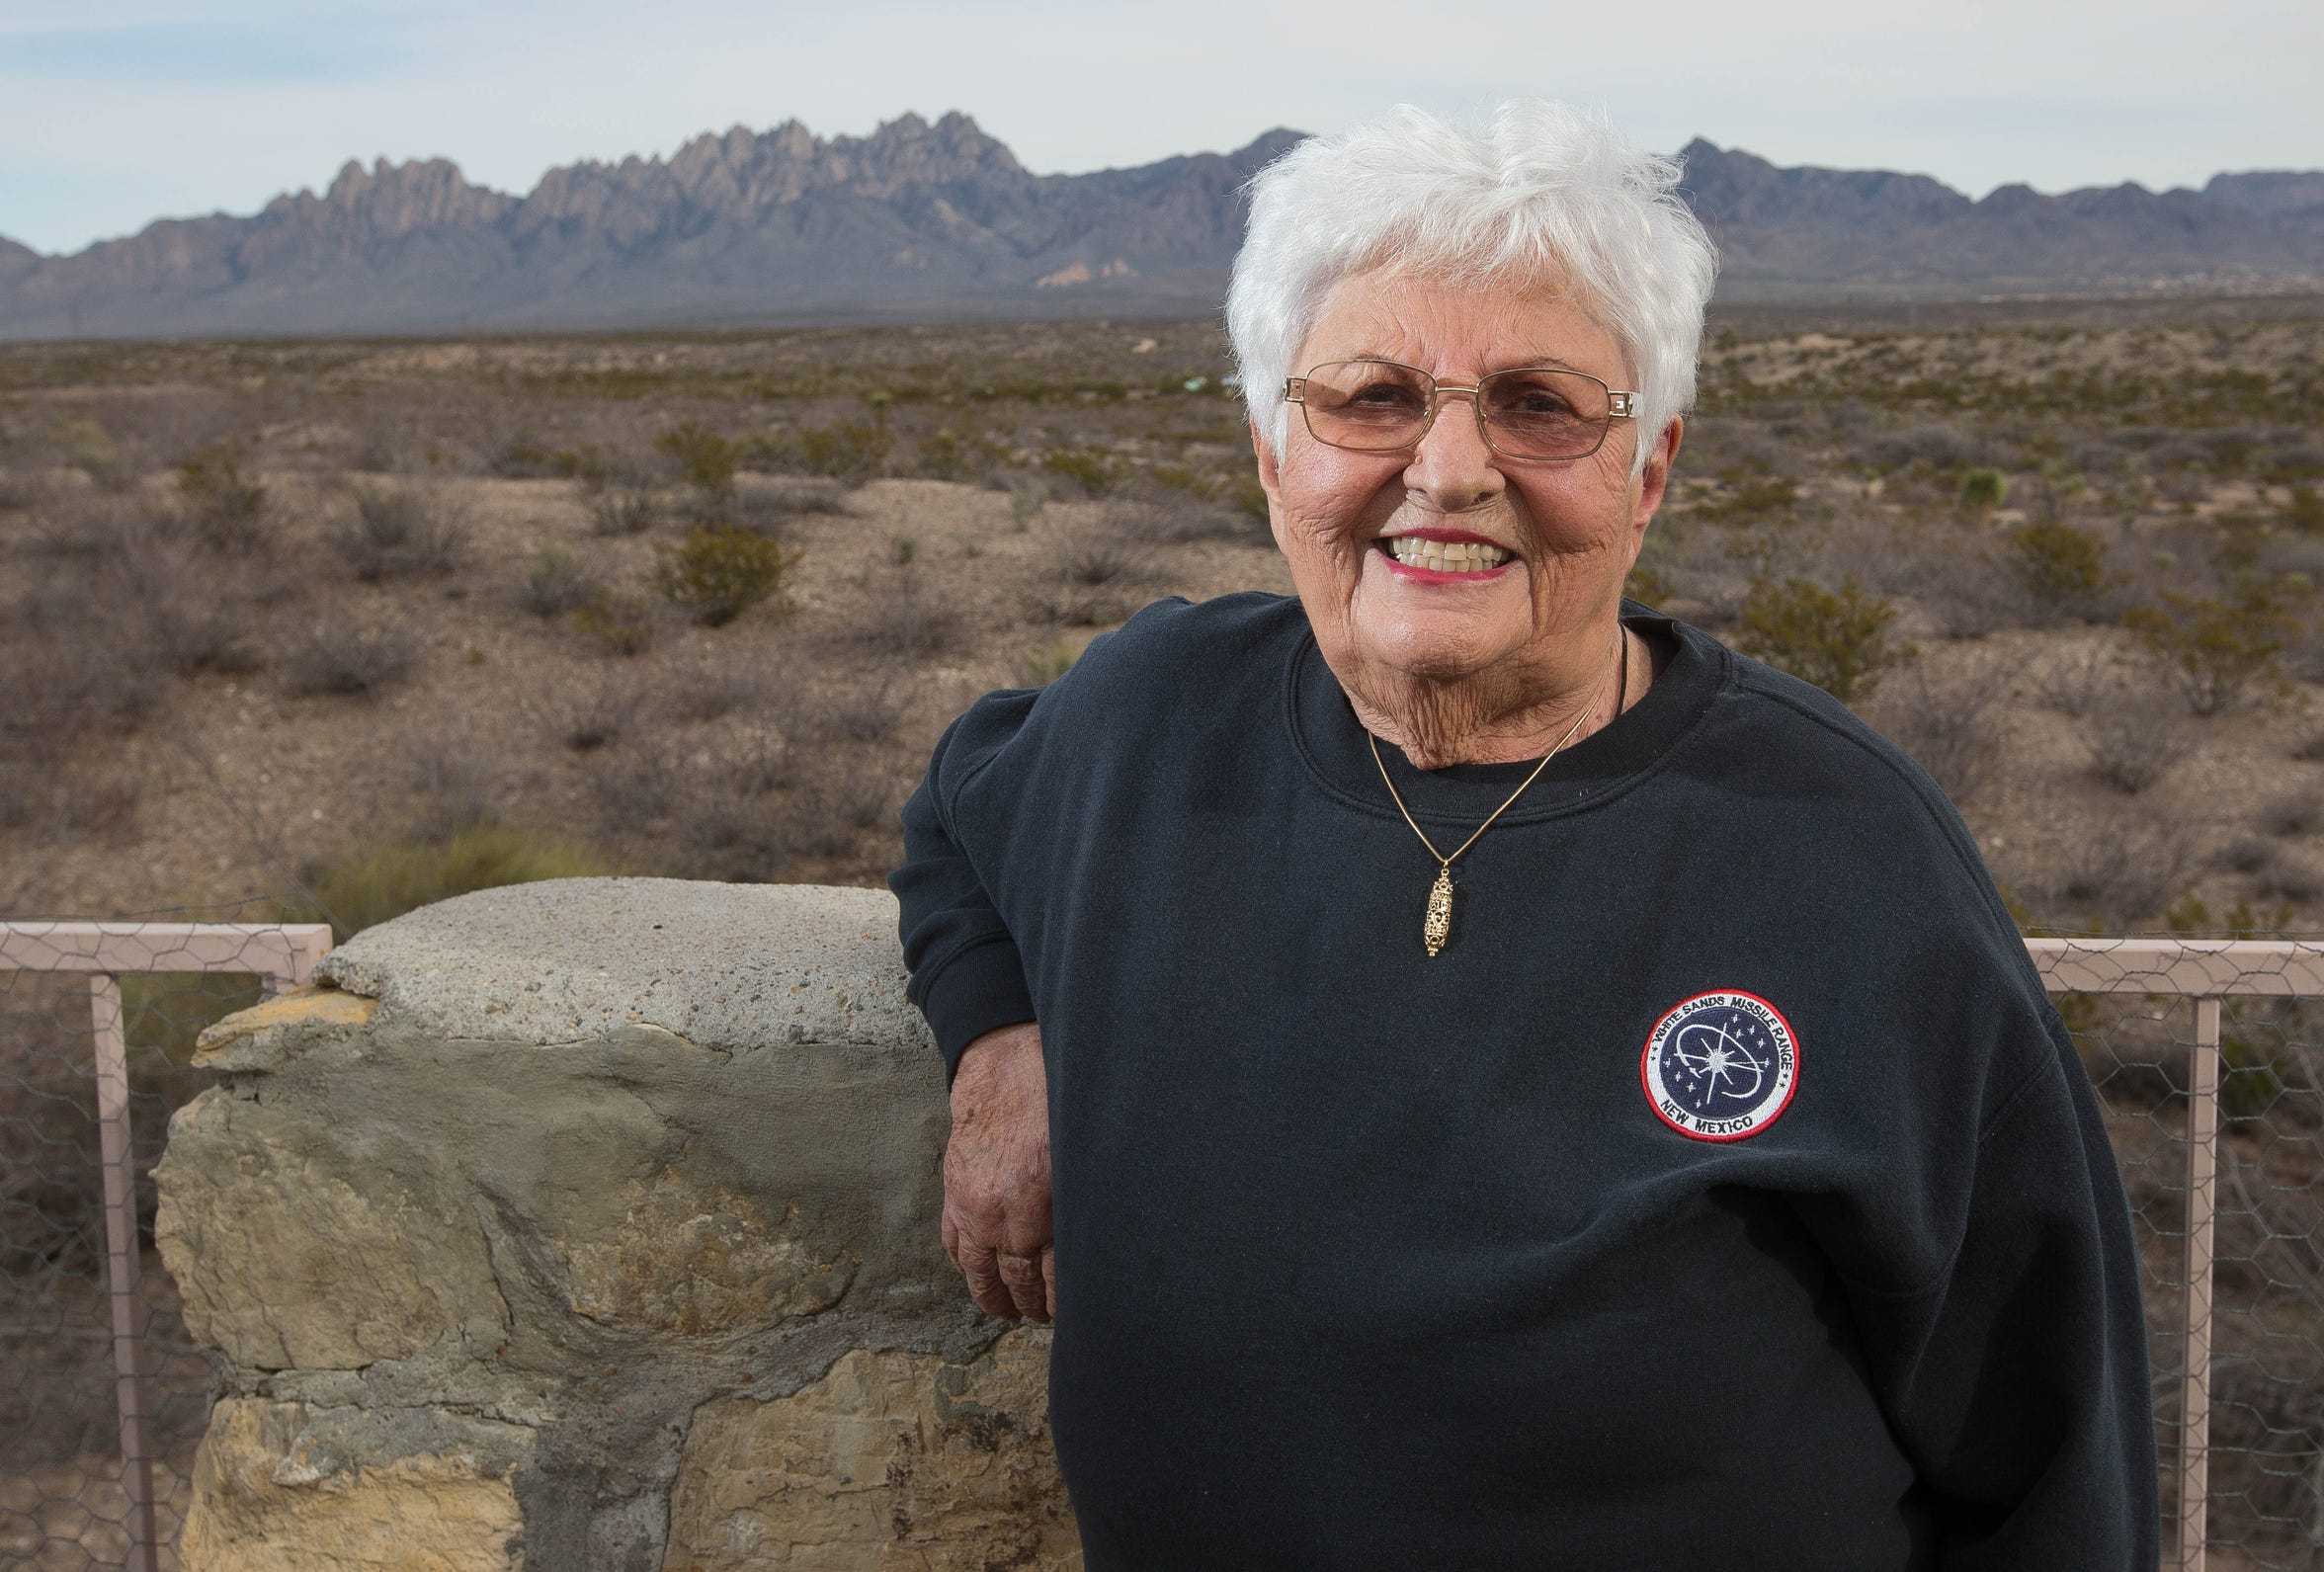 Frances Williams, the Las Cruces Sun News distinguished resident of 2018. Friday December 21, 2018 on the patio of her house.